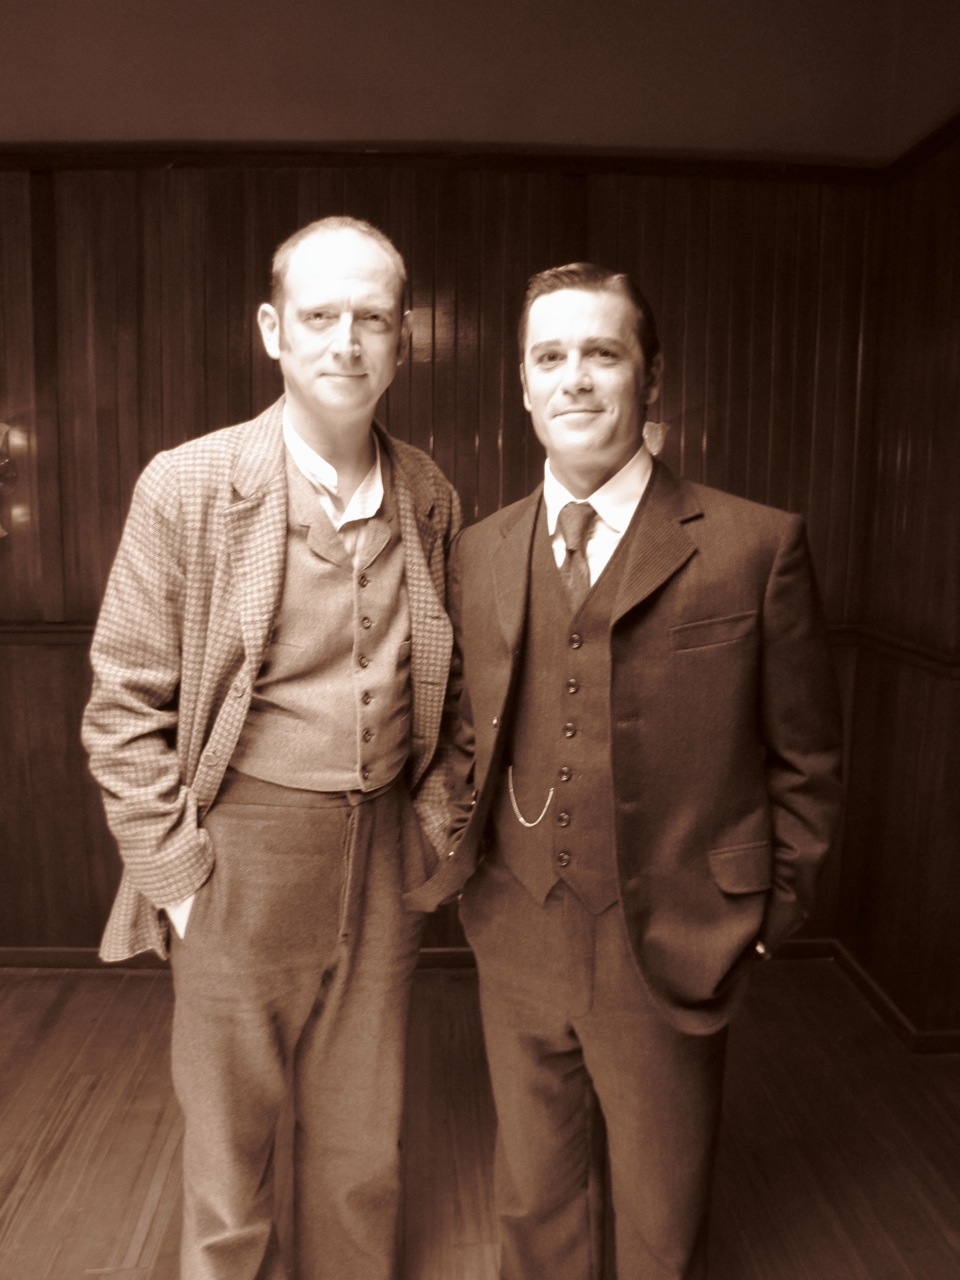 Robert Fulton with Yannick Bisson on the set of